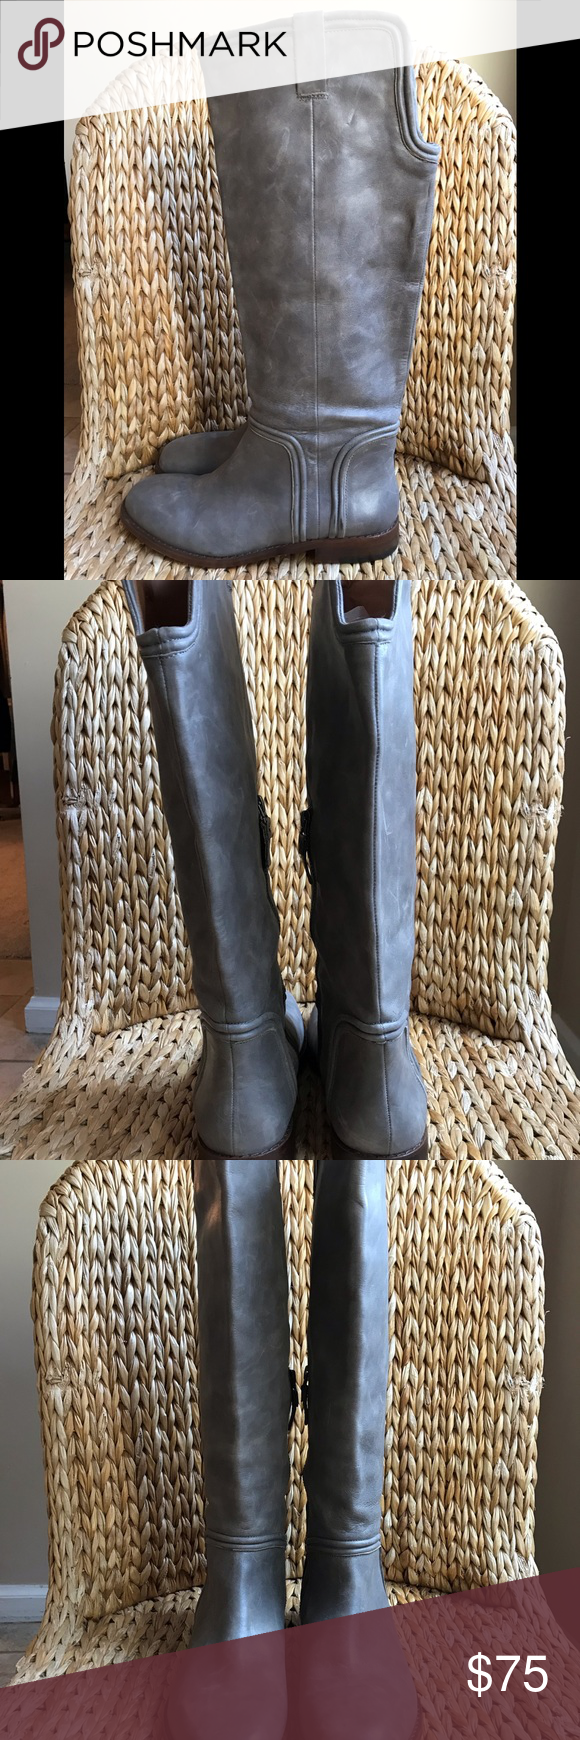 Modern Vintage Leather Riding Boots | Leather riding boots